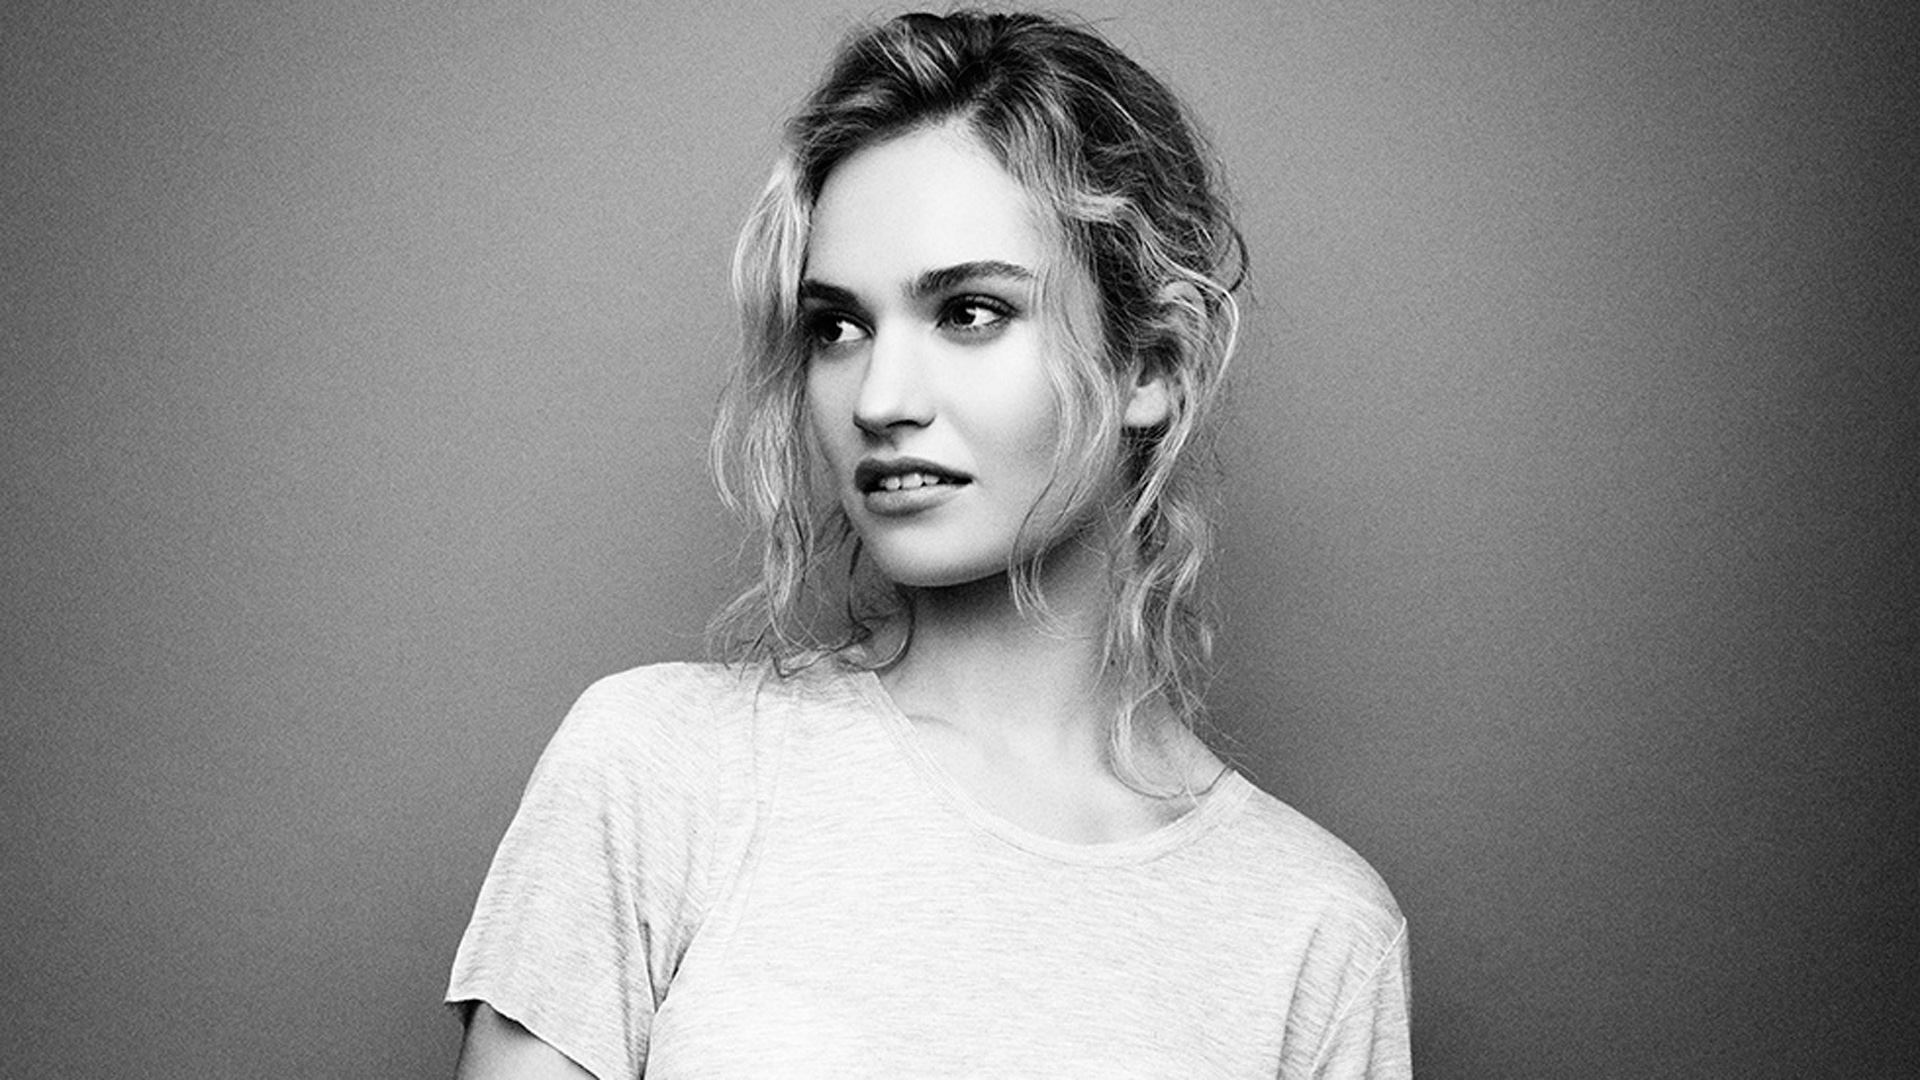 Lily James Wallpapers High Resolution and Quality Download 1920x1080